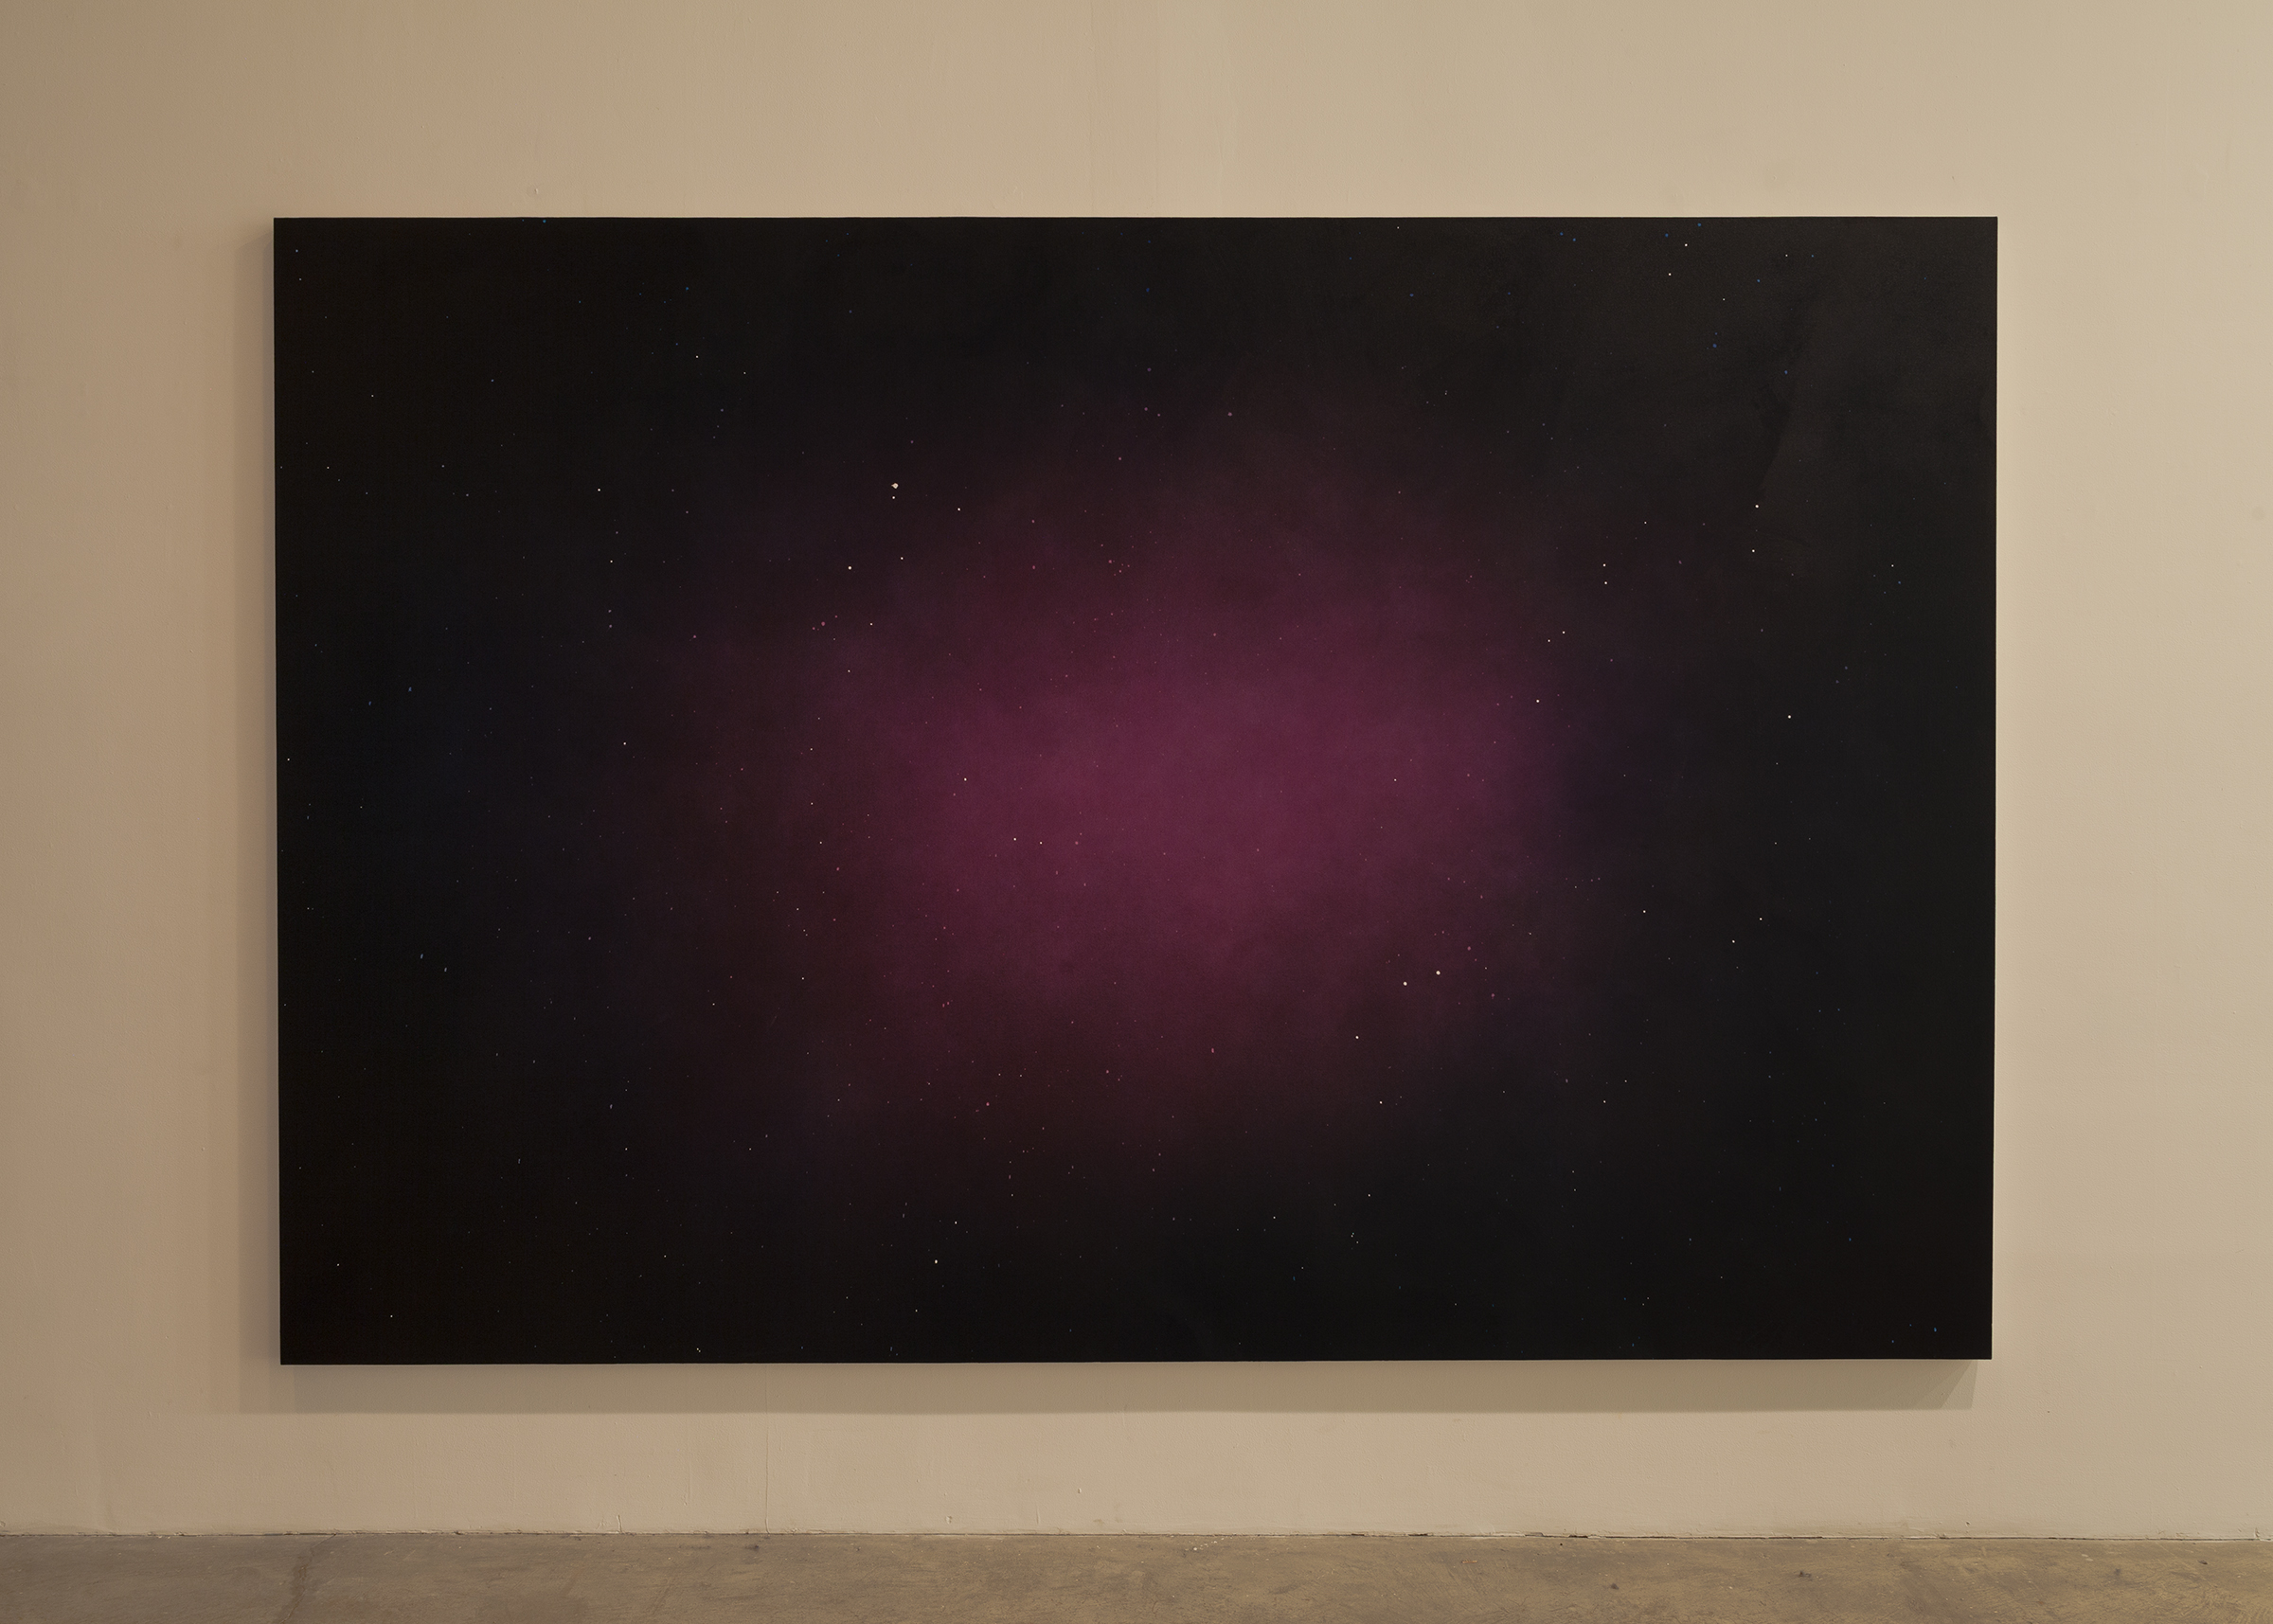 Lazaros,  (α 0° / δ 0°) , 2015, airbrushed acrylic on canvas, 74 x 111 in